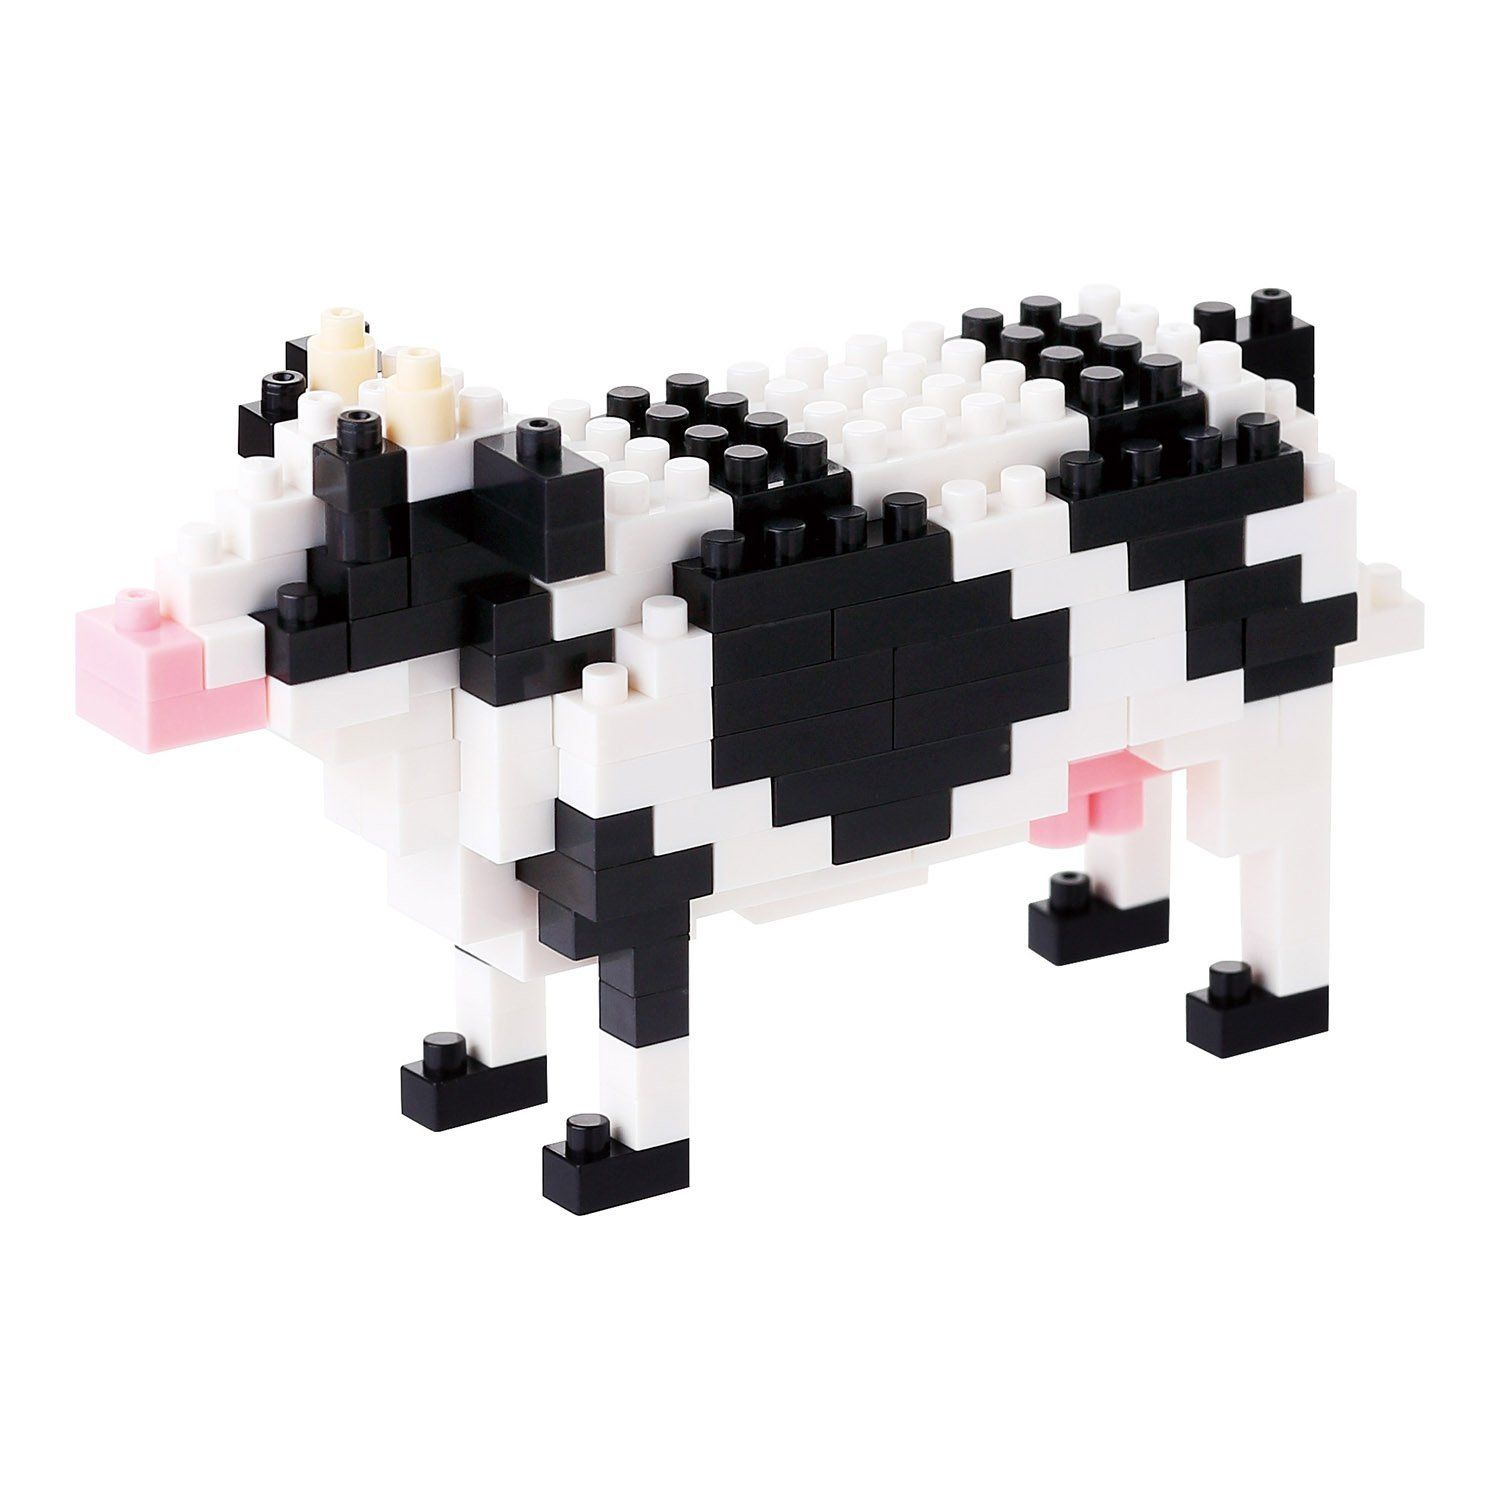 Cow Mini Building Sets by Nanoblock (NBC141) by nanoblock